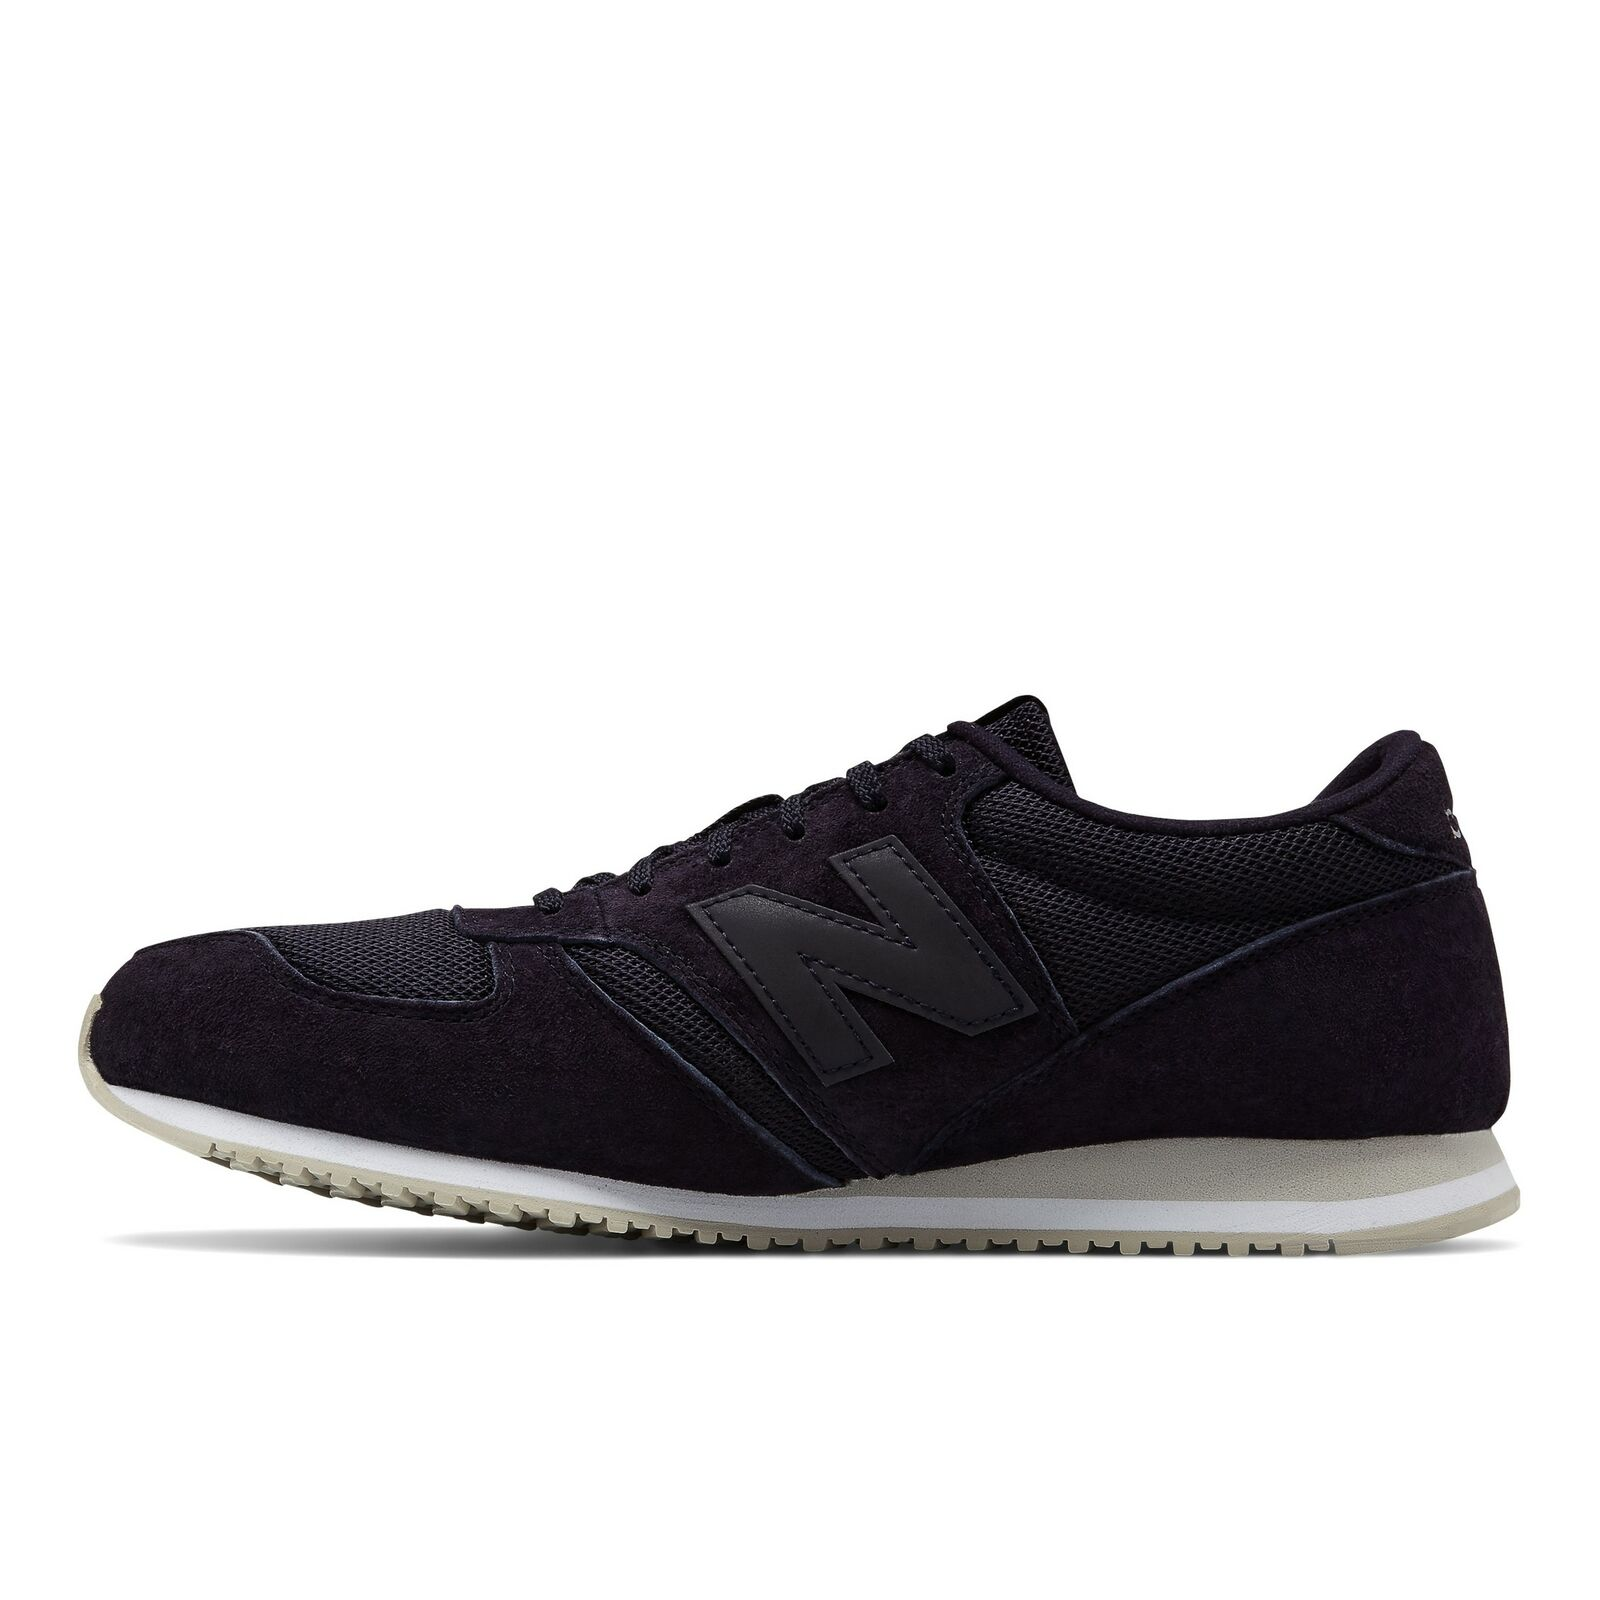 New Balance NB 420 Mens Lifestyle Sneakers Running shoes Navy bluee U420-NVY